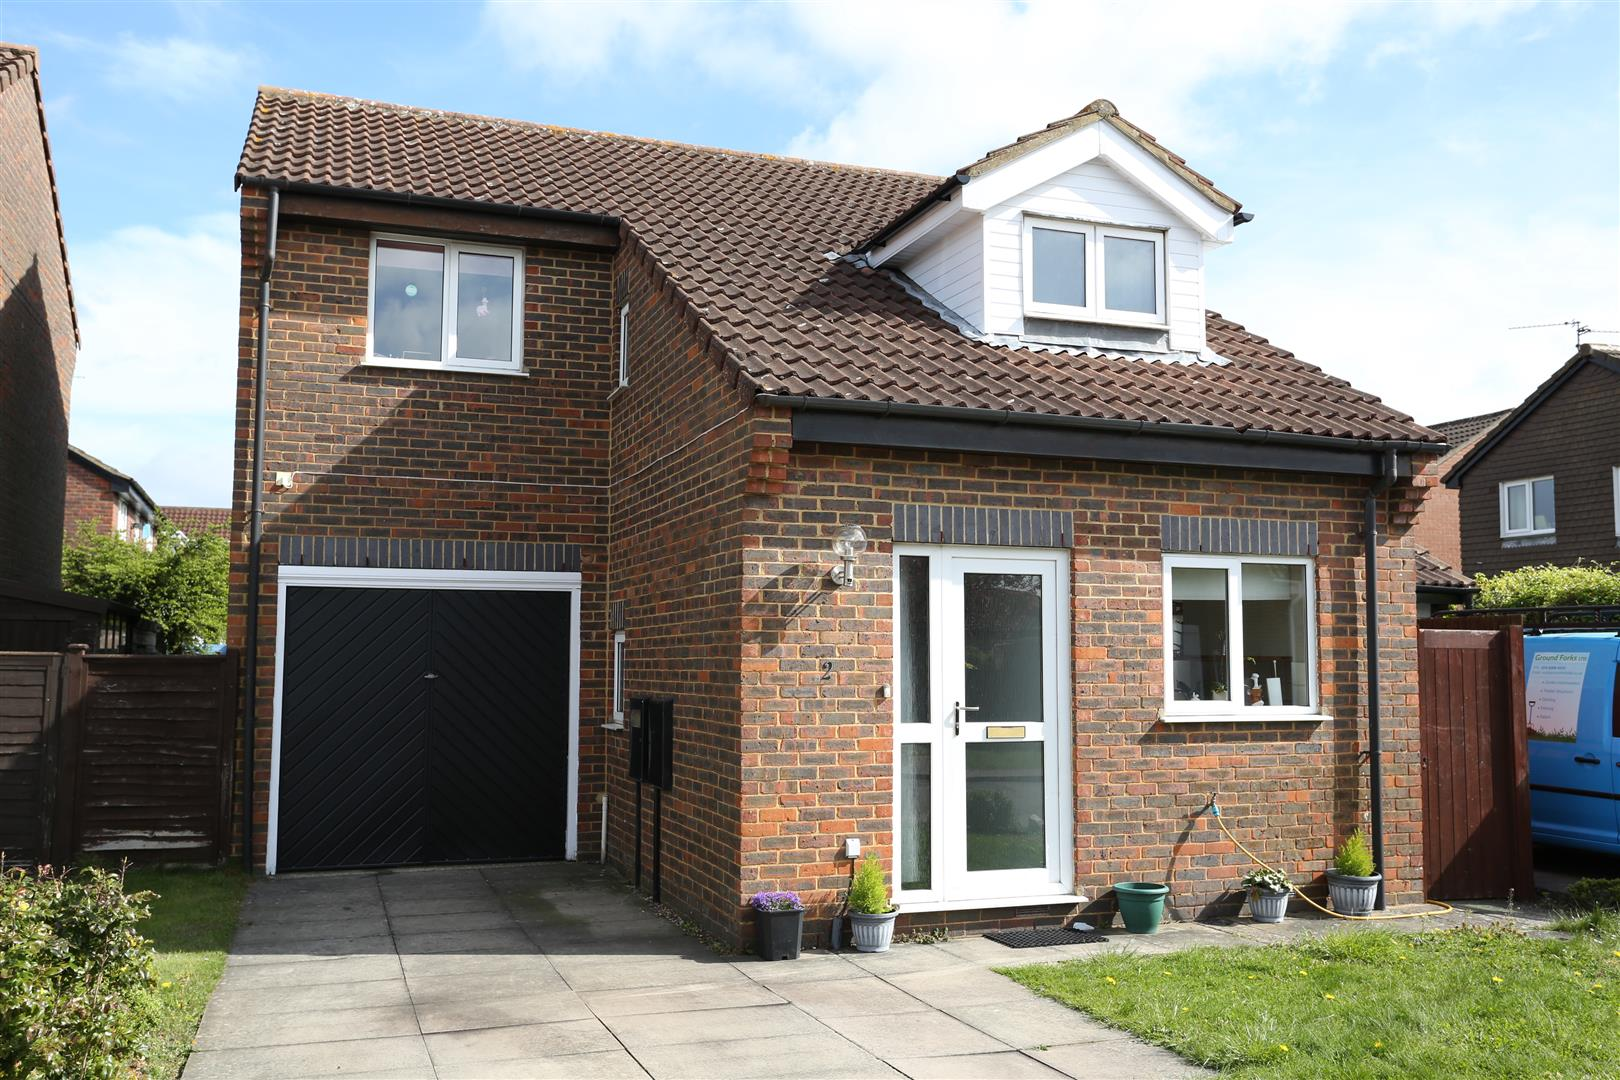 3 Bedrooms Detached House for sale in Maple Drive, Wellingborough